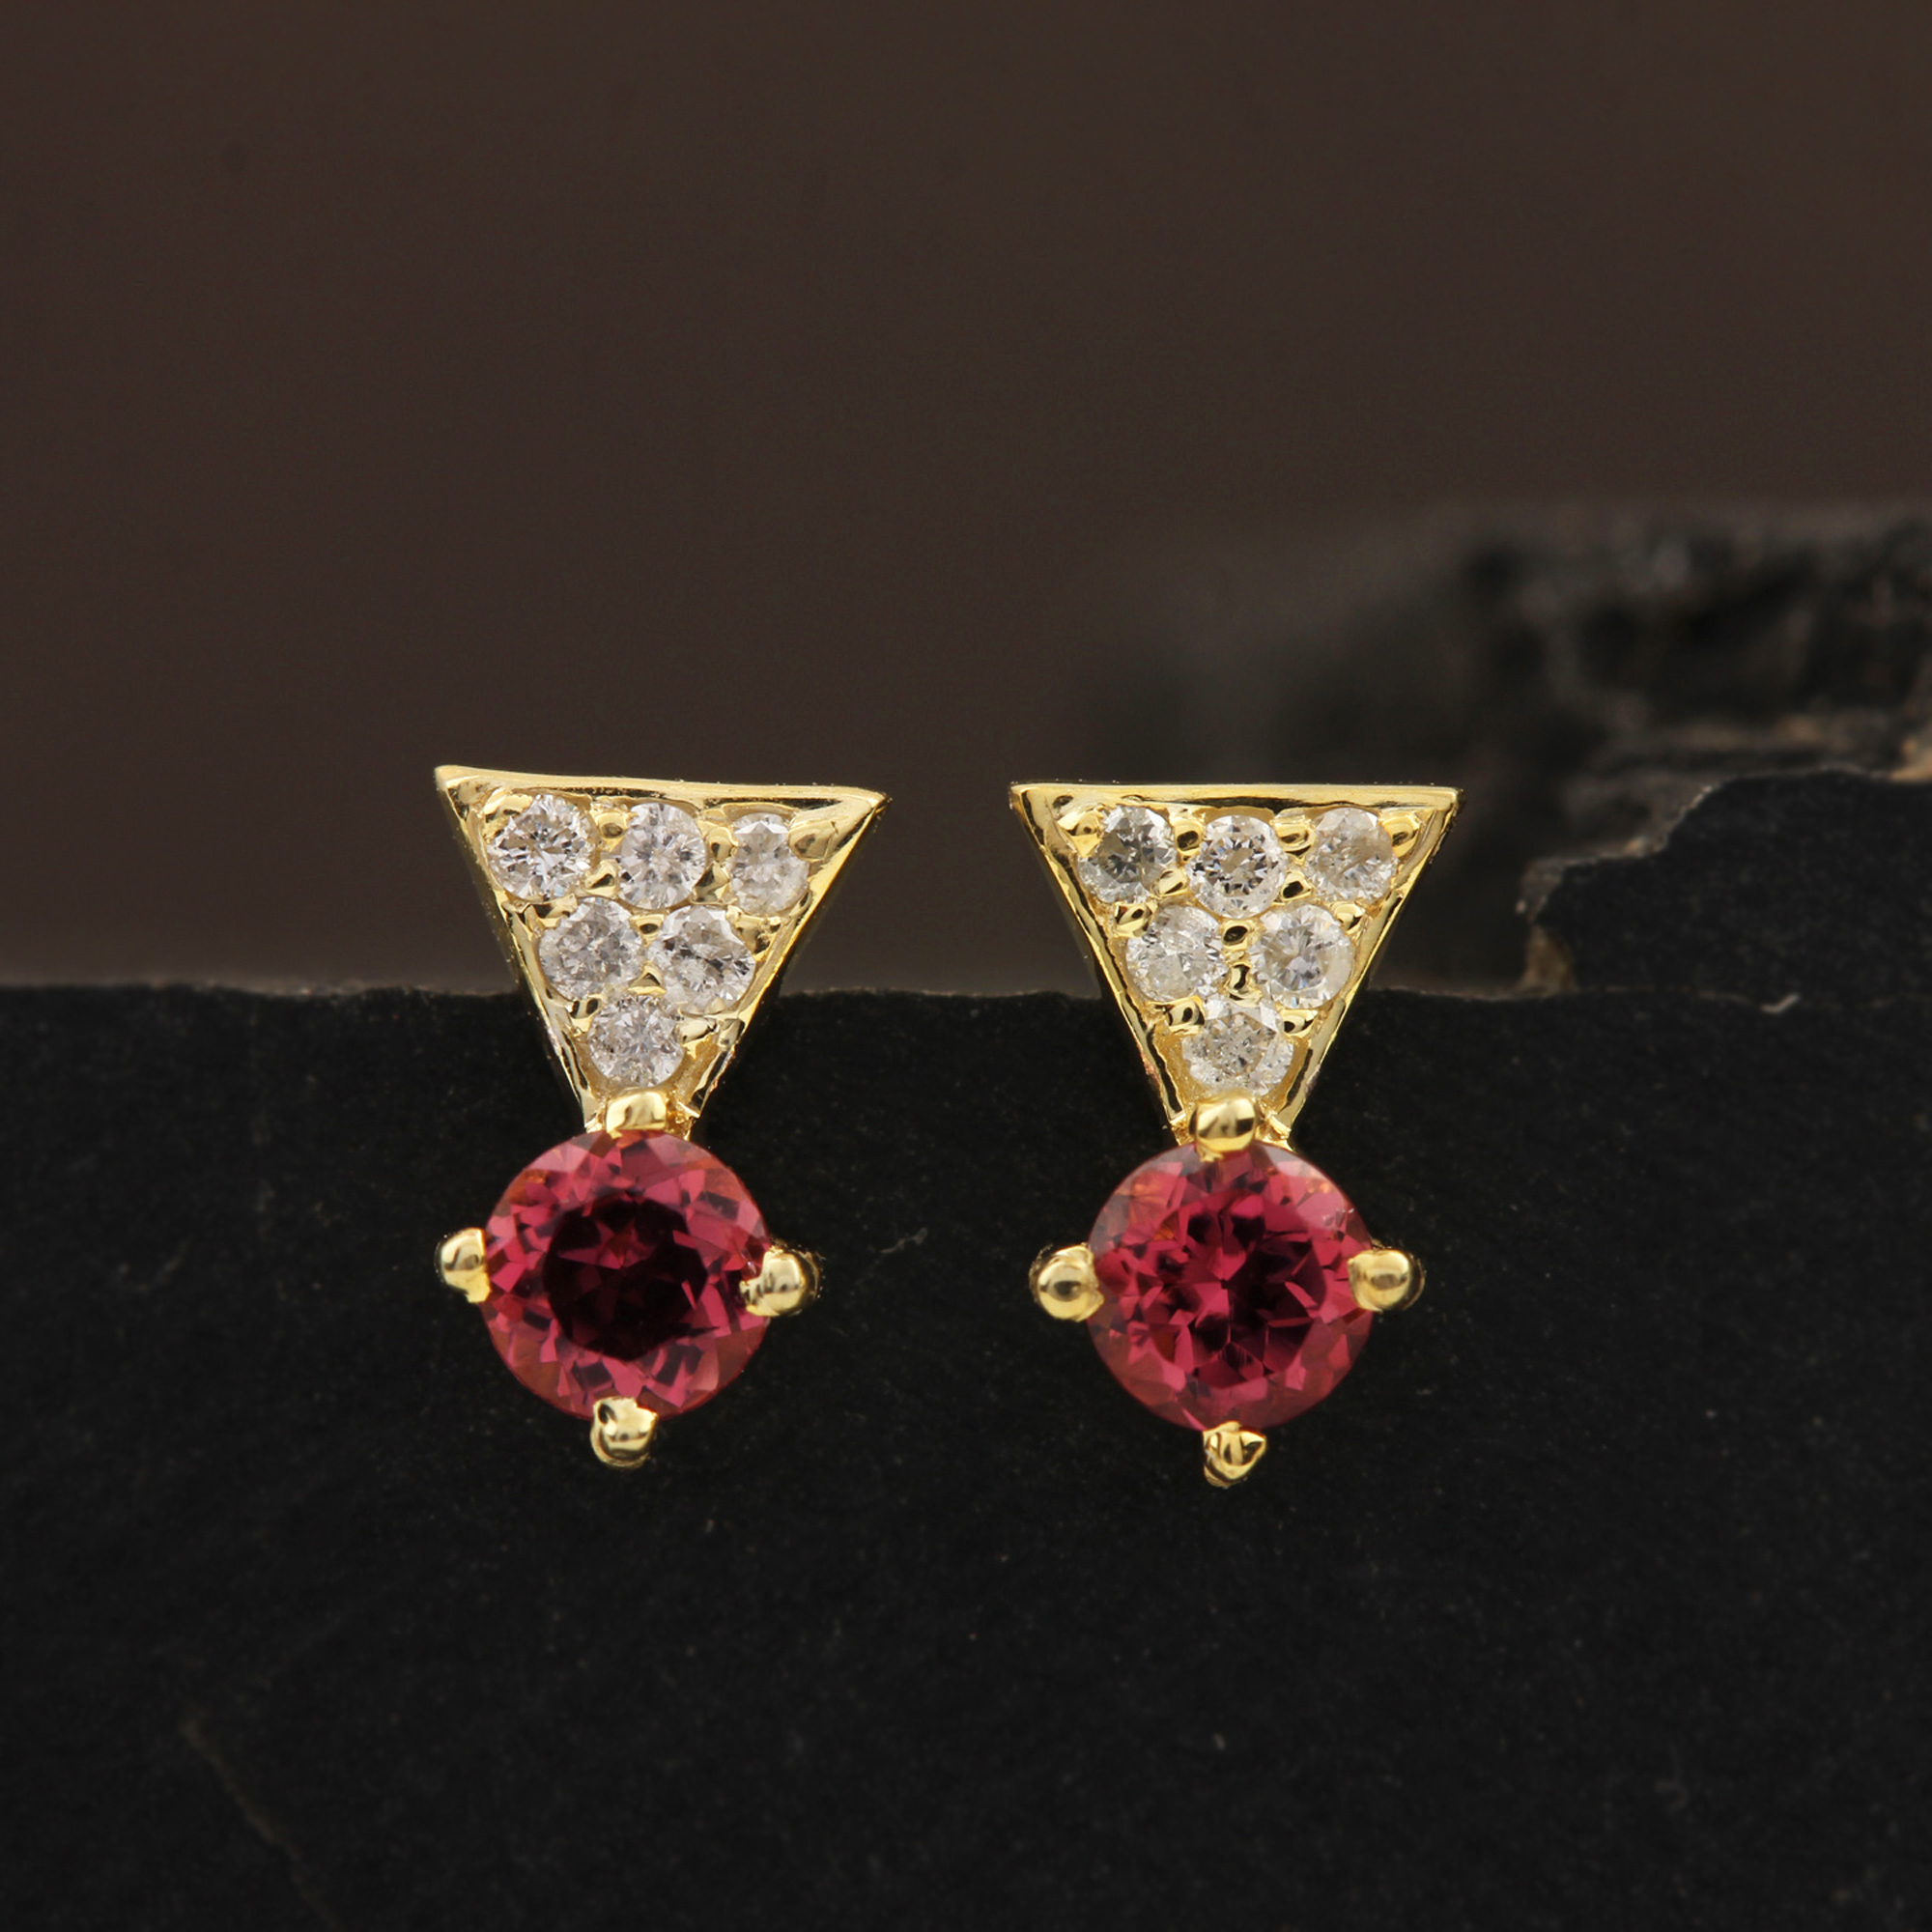 Solitaire Stud Earrings Adorned With Diamond & Natural Tourmaline 14k Solid Gold Jewelry